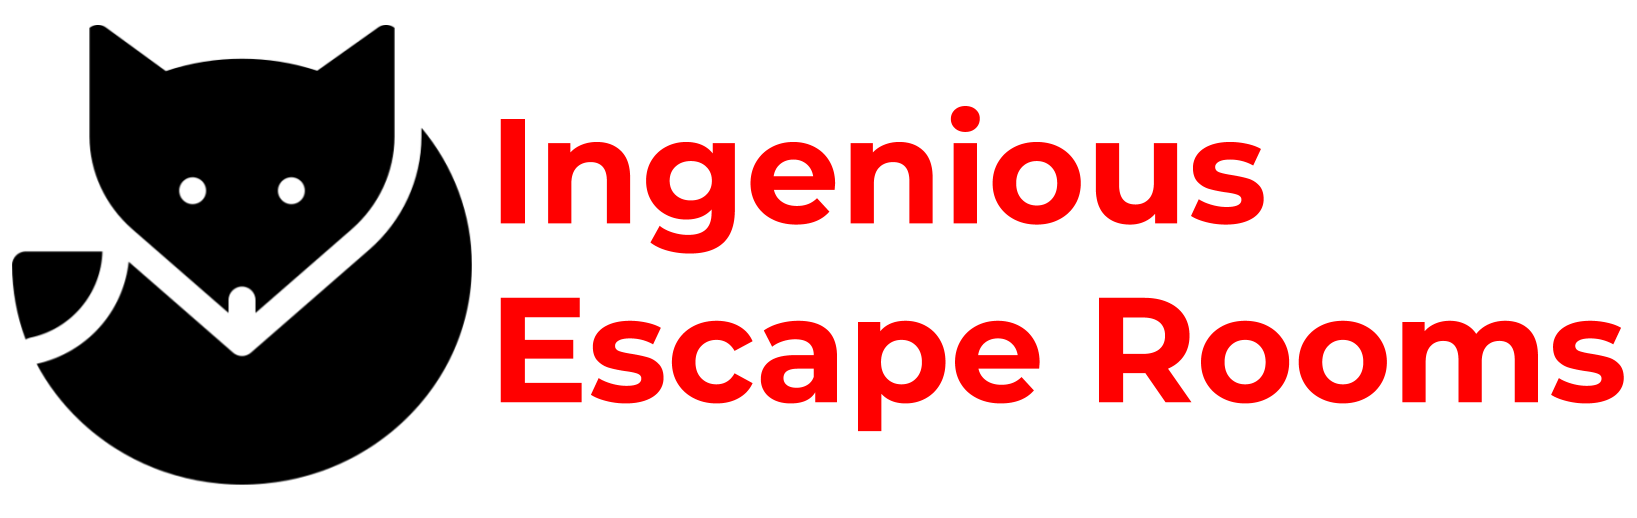 Ingenious Escape Rooms |   Welcome